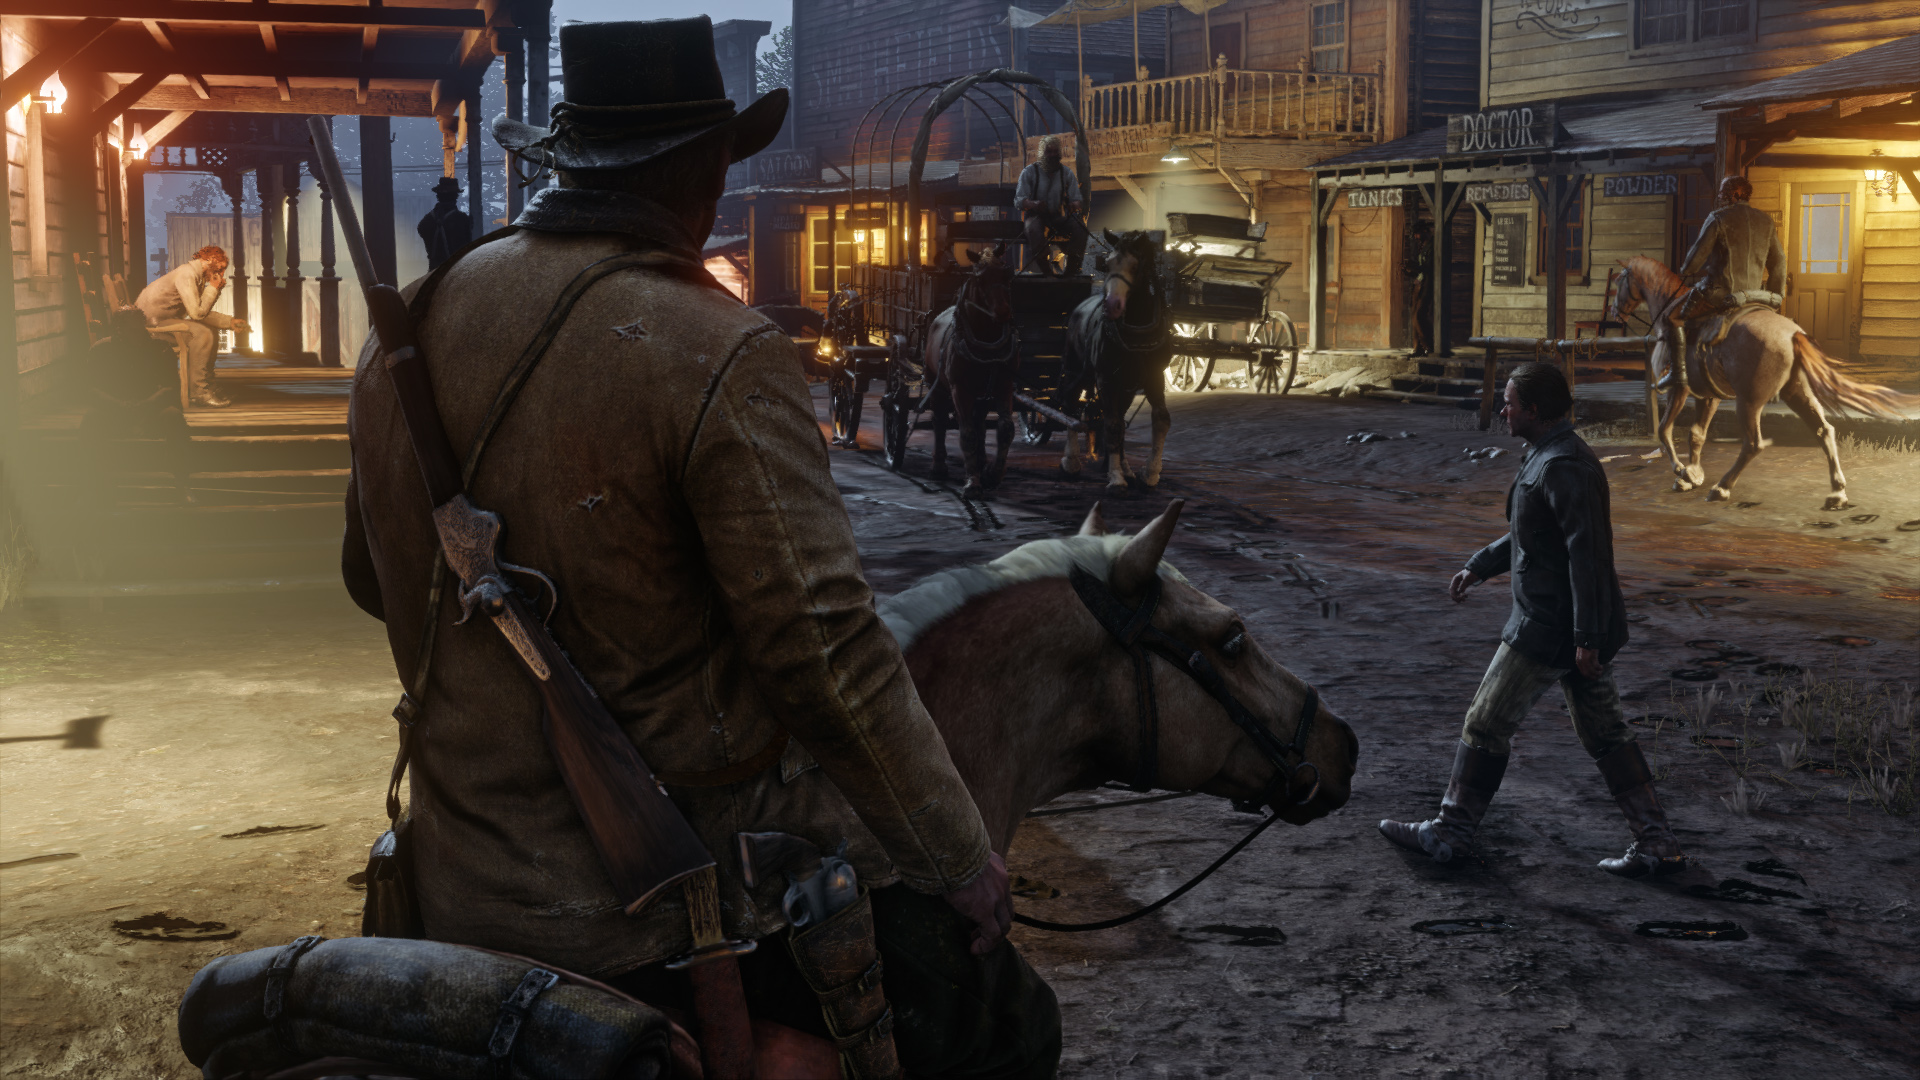 Red Dead Redemption 2: Launch date, preorder details, and more